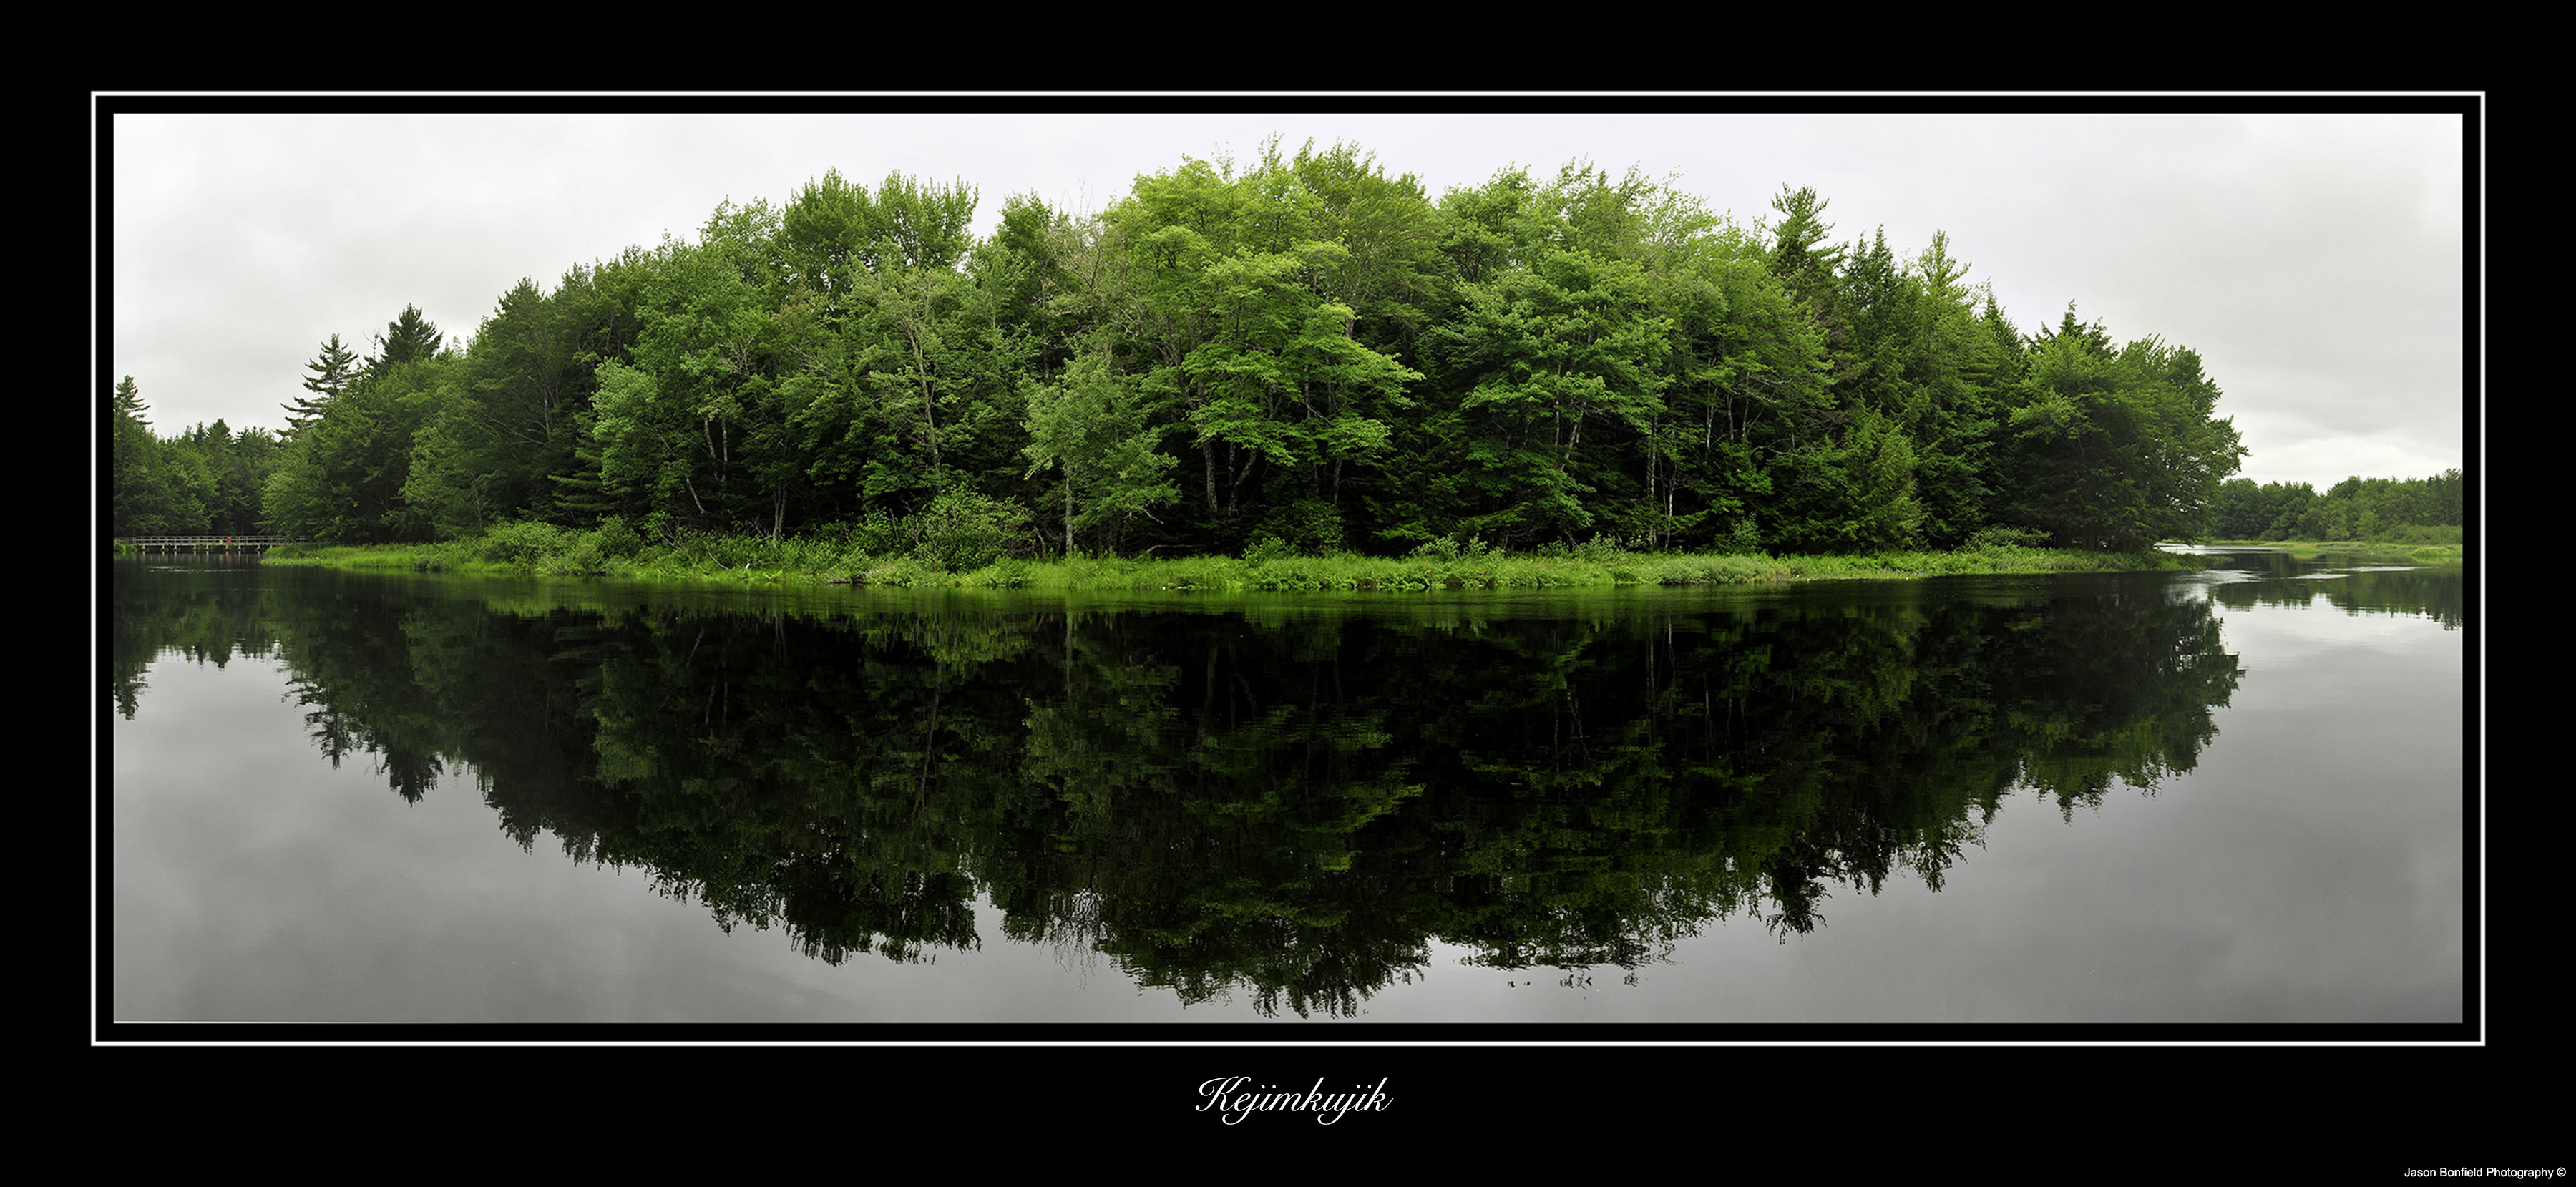 Picture of trees and their reflection in a lake at Kejimkujik National Park, Nova Scotia, Canada.